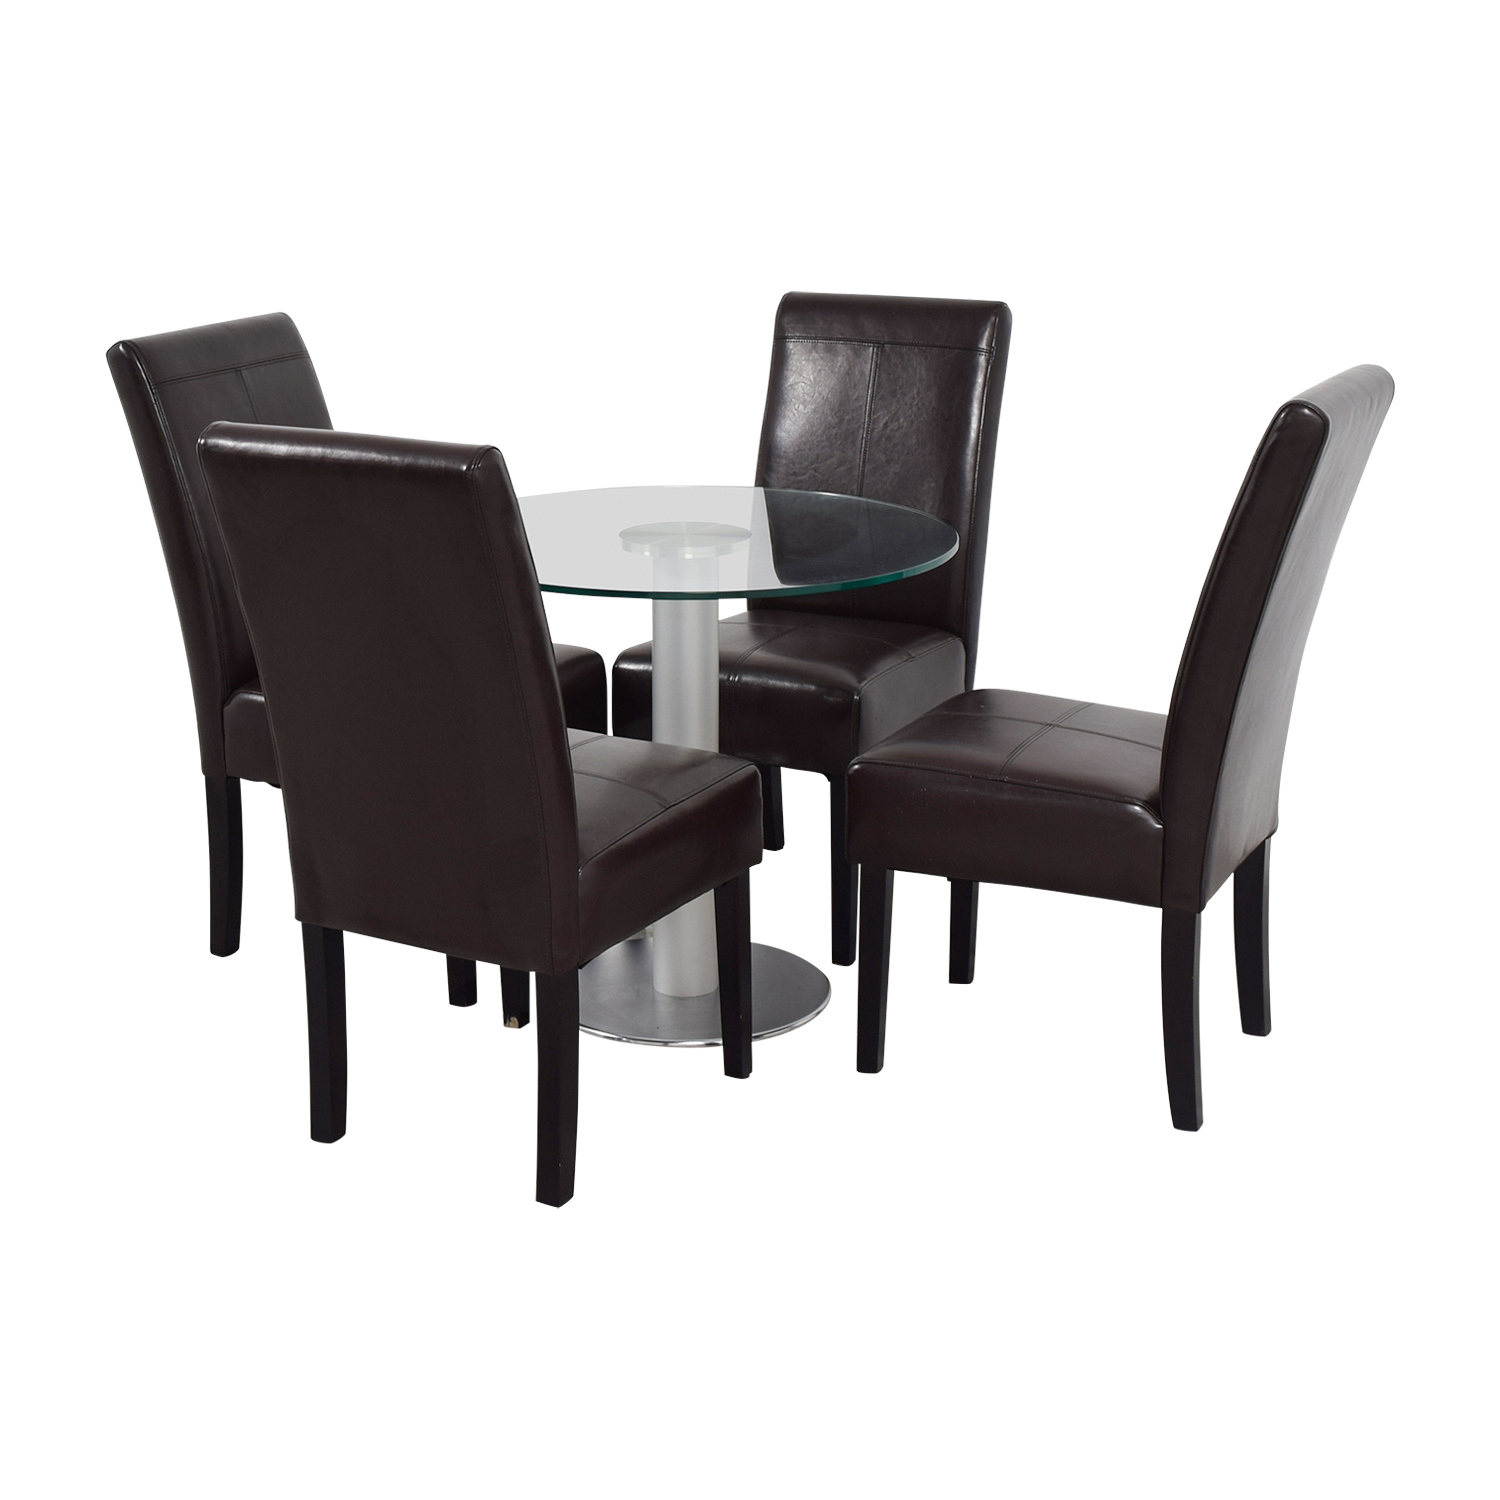 buy Round Glass and Metal Dining Set online